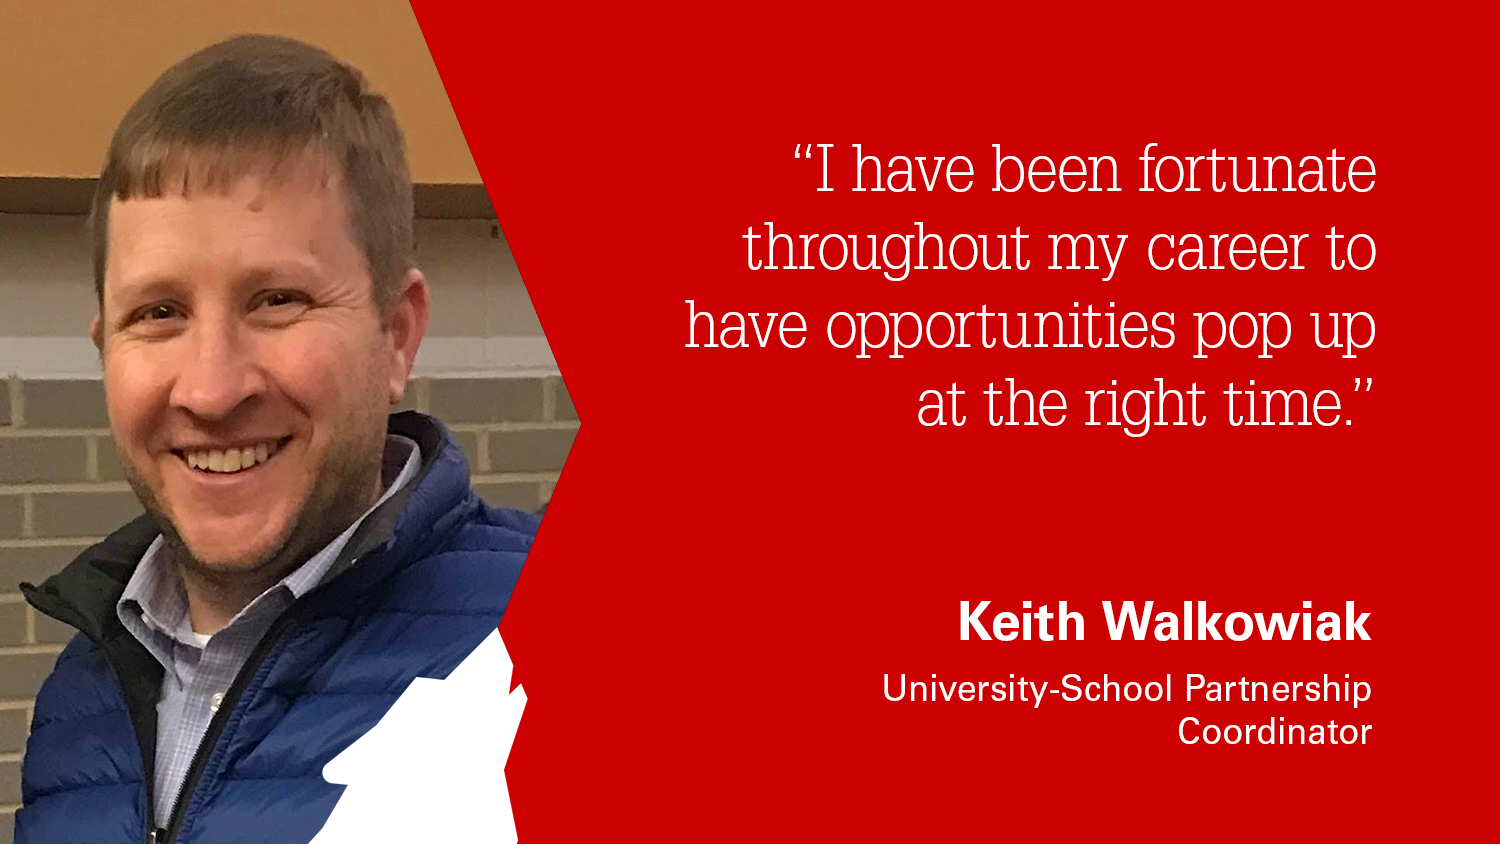 University-School Partnership Coordinator Keith Walkowiak